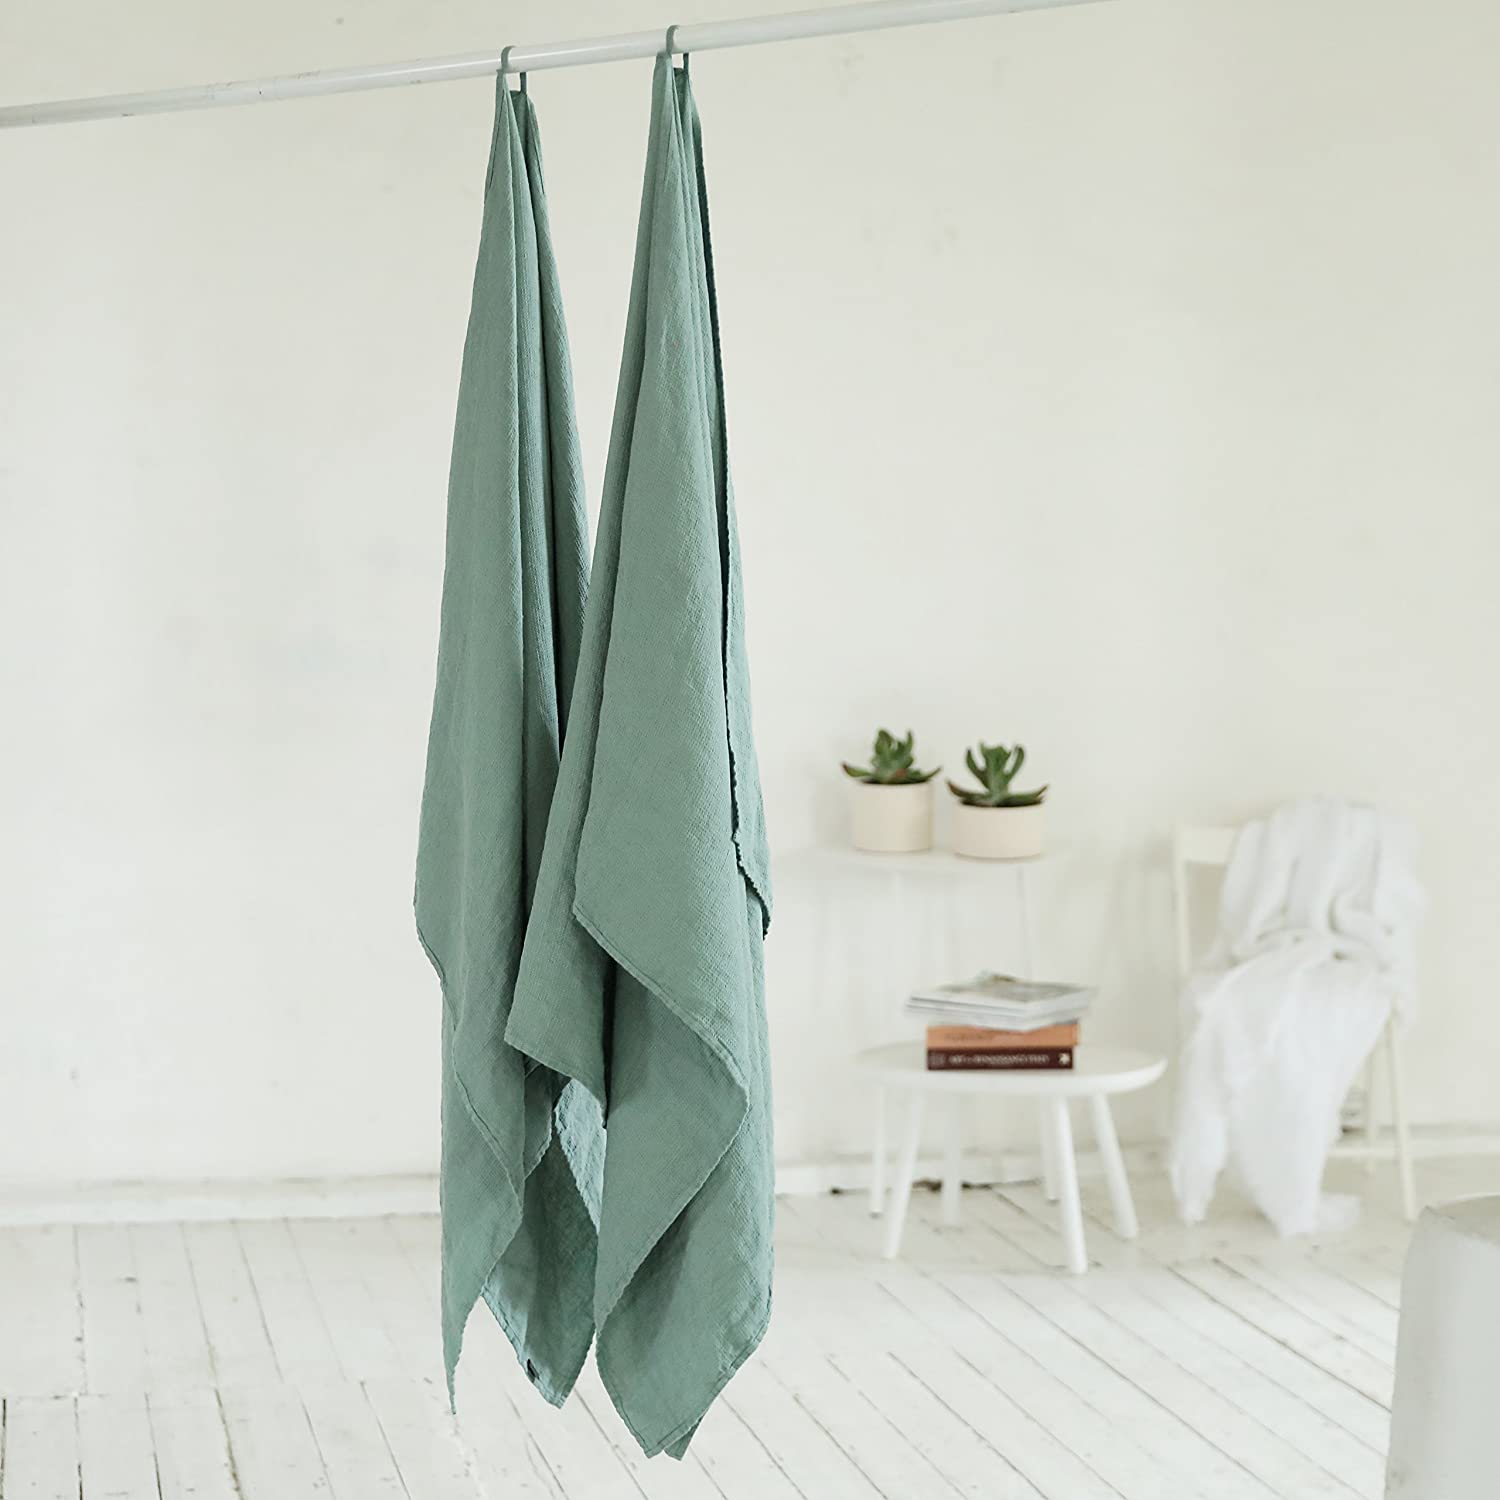 European Linen Super Absorbent Linenme 0674002 Machine Washable Bath Sheet Linen Bath Towel Washed Waffle Spa Green 30 x 51 Made in Europe